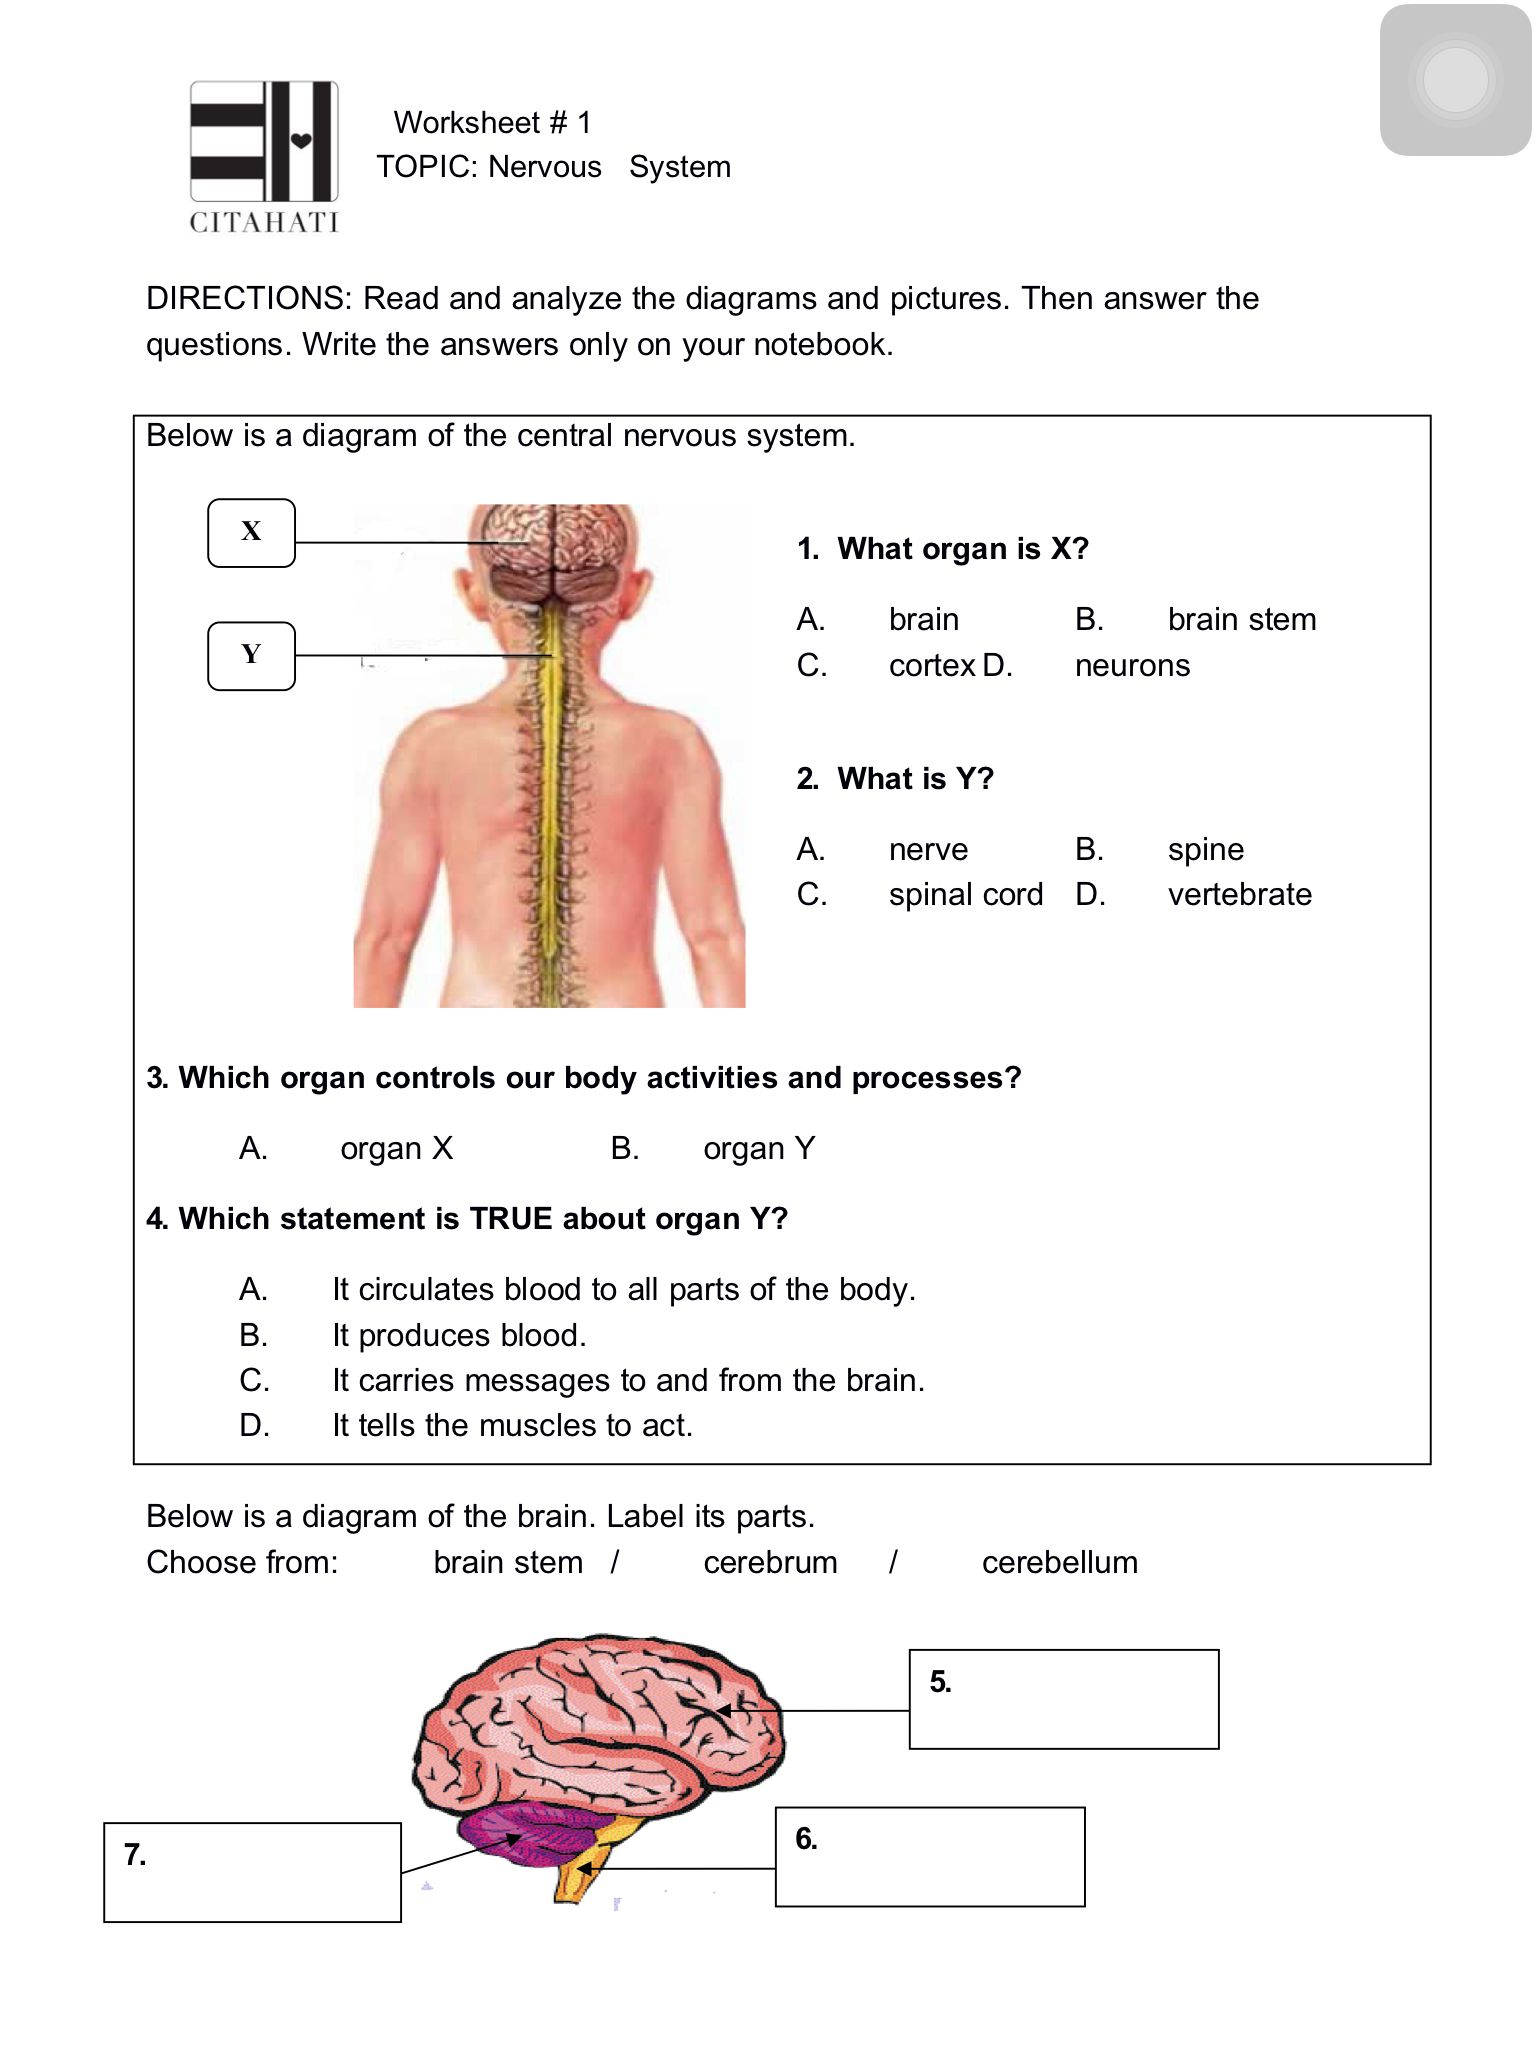 Worksheet 1 Nervous System Page 1 Theme 1